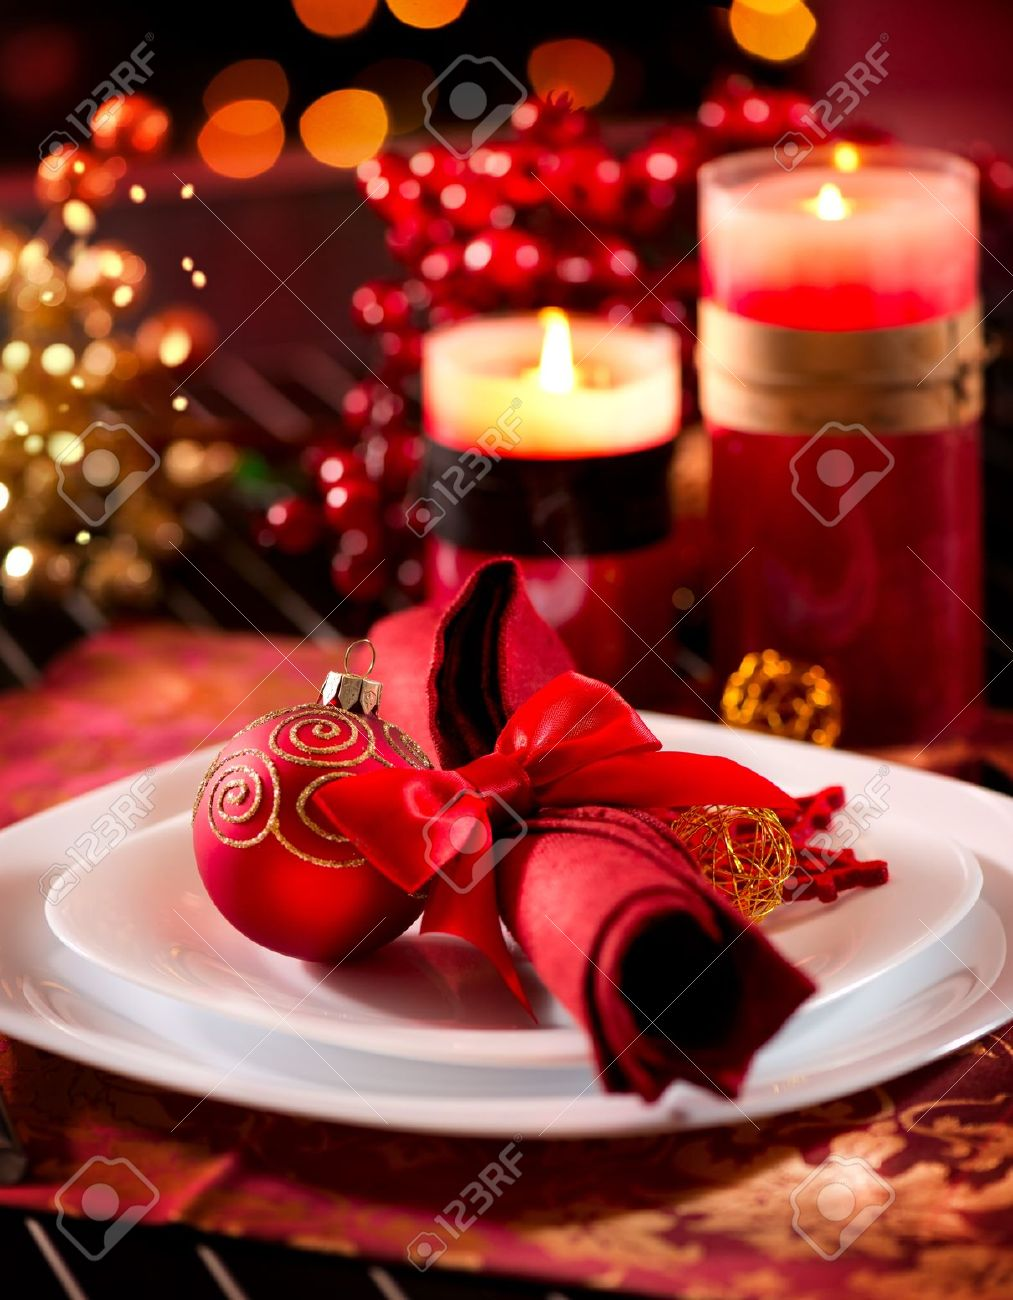 Christmas Table Setting Holiday Decorations Stock Photo, Picture ...